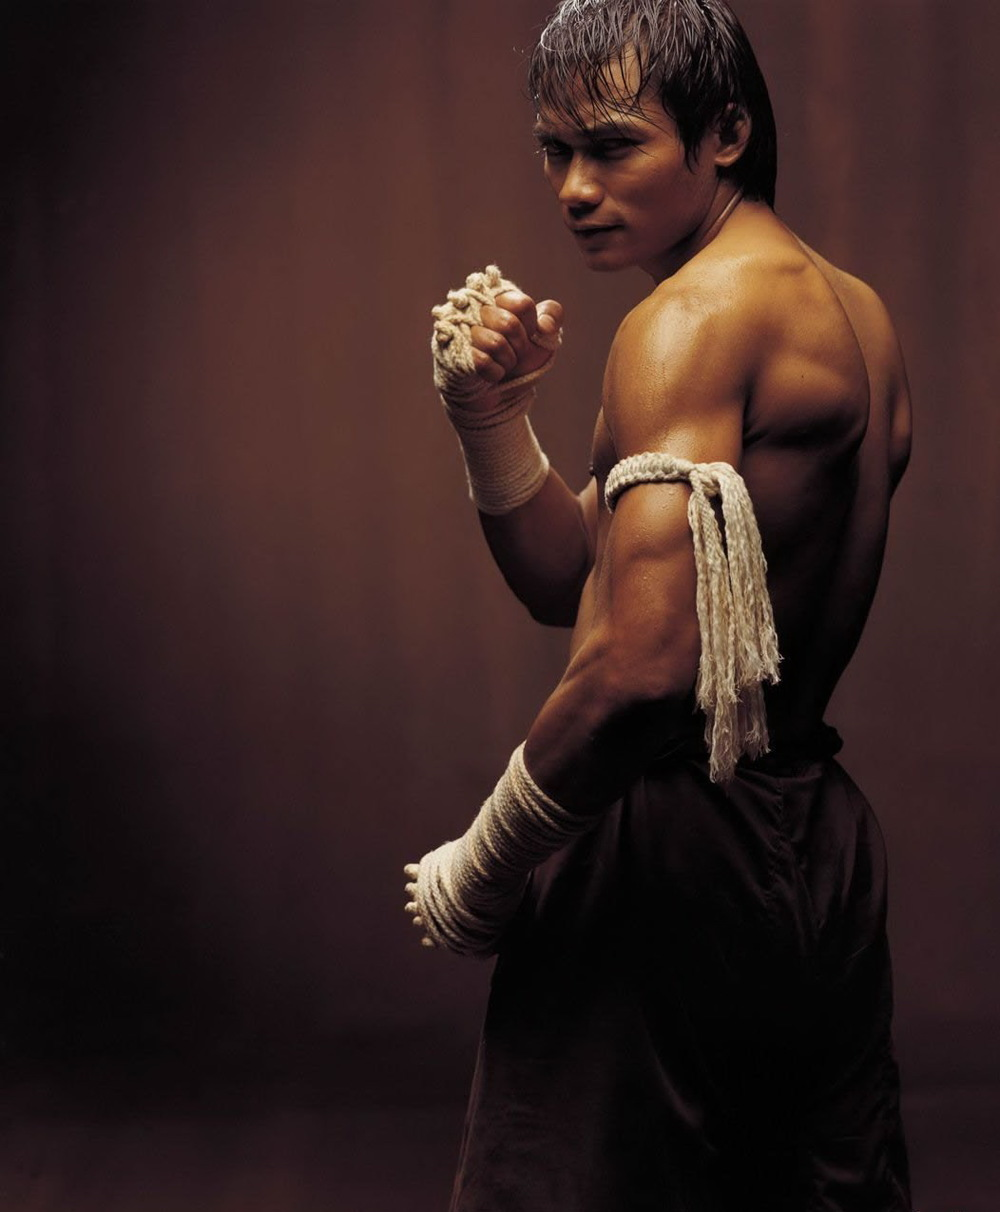 Jaa Awesome martial arts action stars tony jaa, iko uwais, and tiger chen will